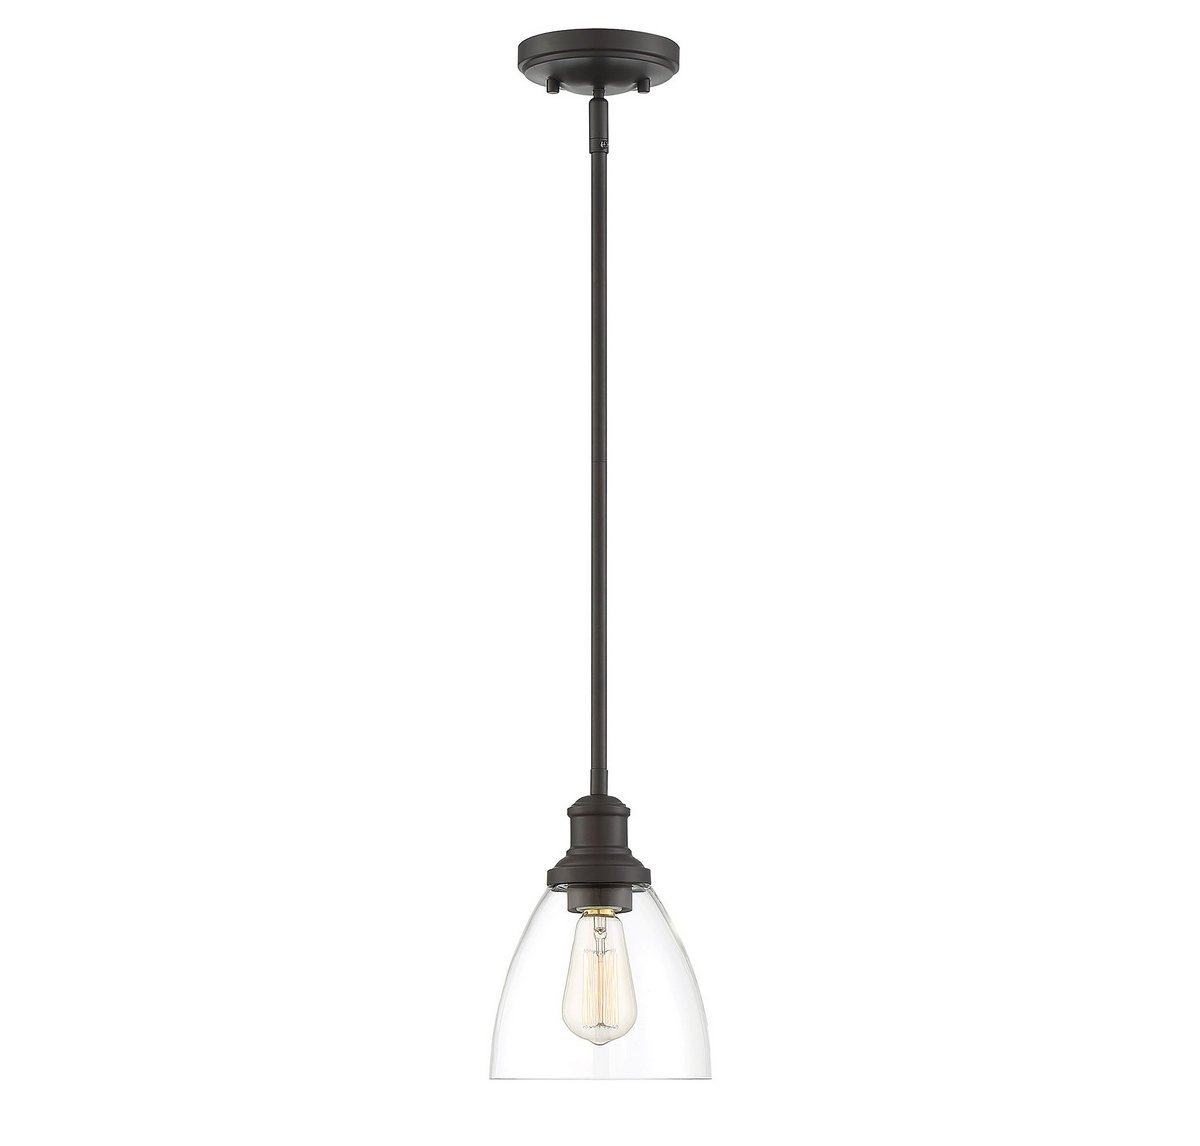 Trade Winds Lighting TW70052ORB Adjustable Hanging Clear Glass Contemporary Ceiling Pendant in Oil Rubbed Bronze